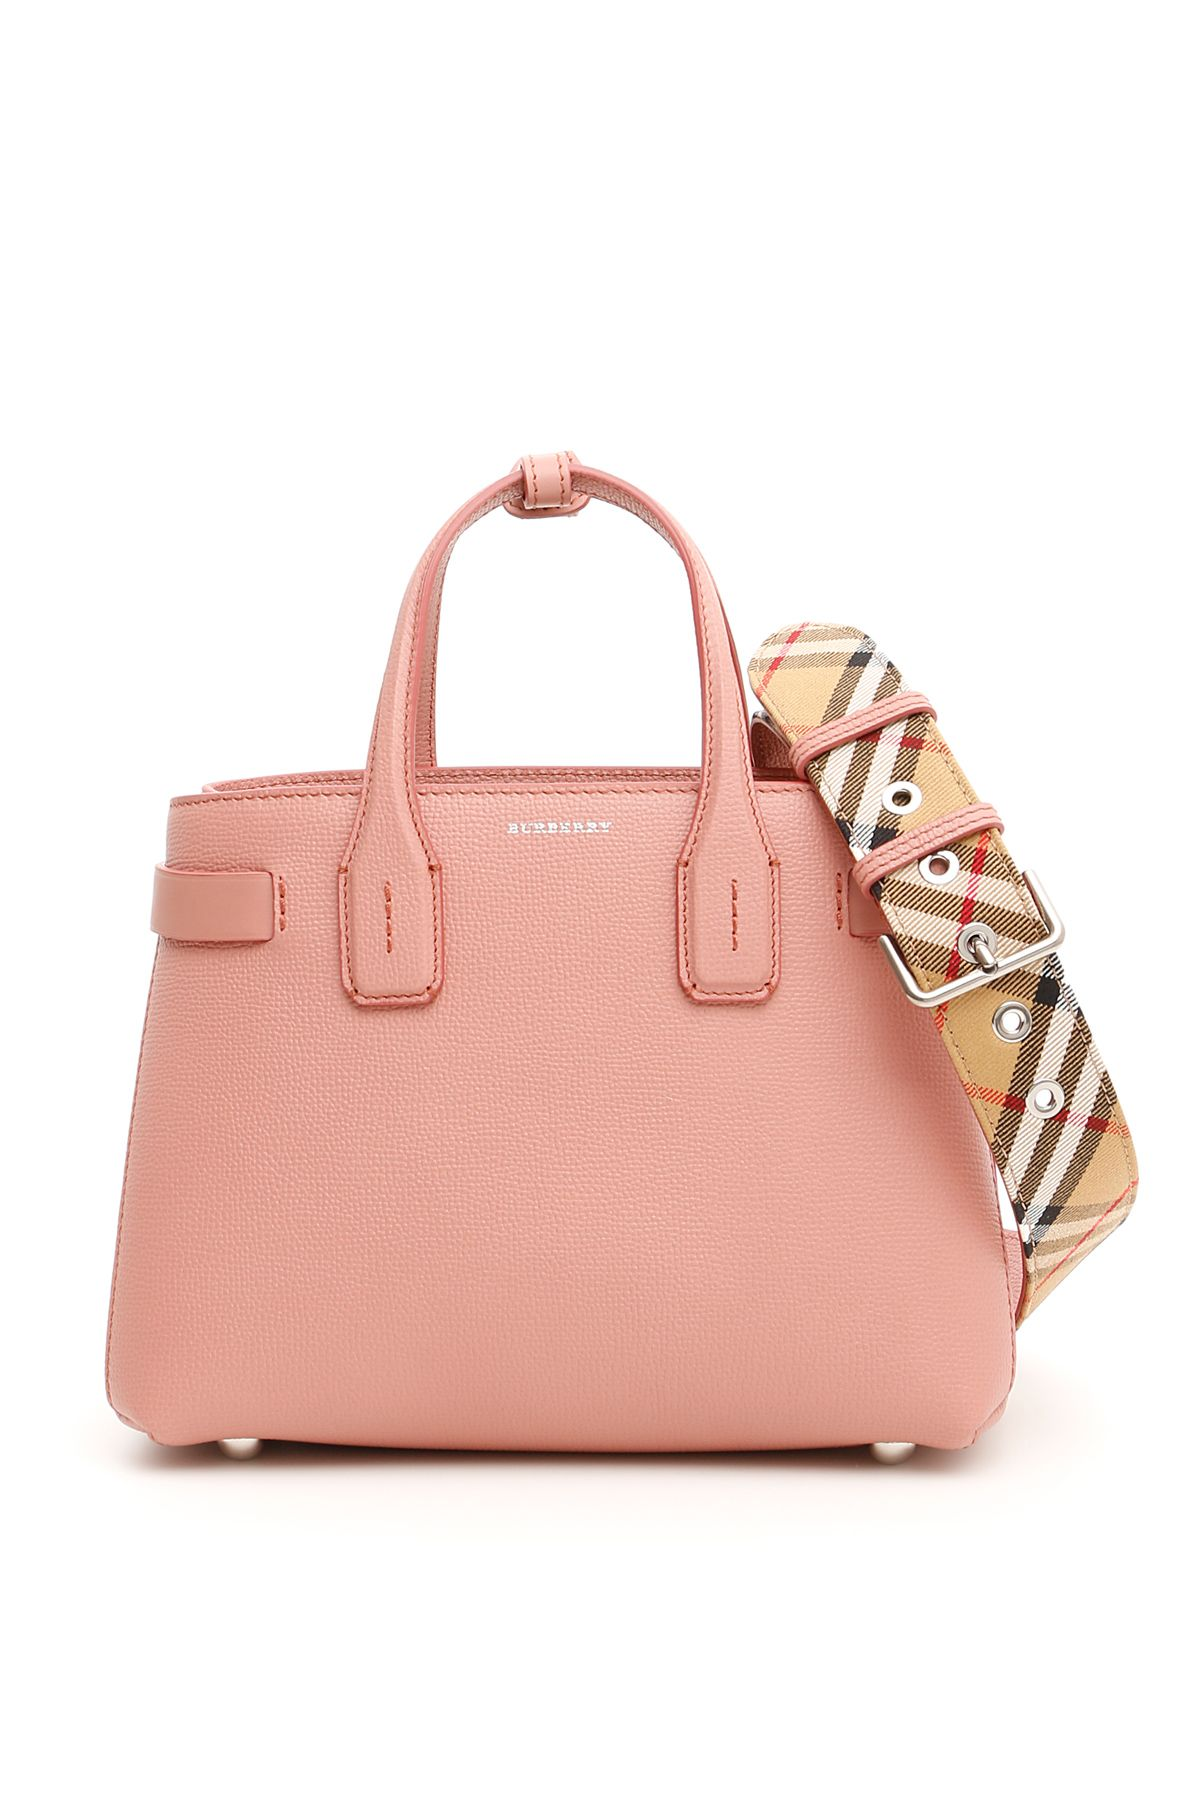 Small Bag Rose Banner Dusty Burberry In bgvYf6yI7